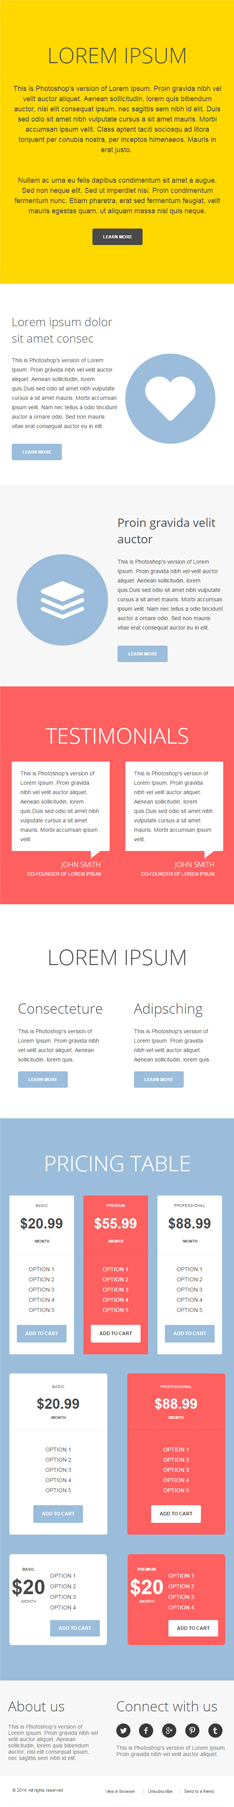 ontheway second half awesome-newsletter template with psd